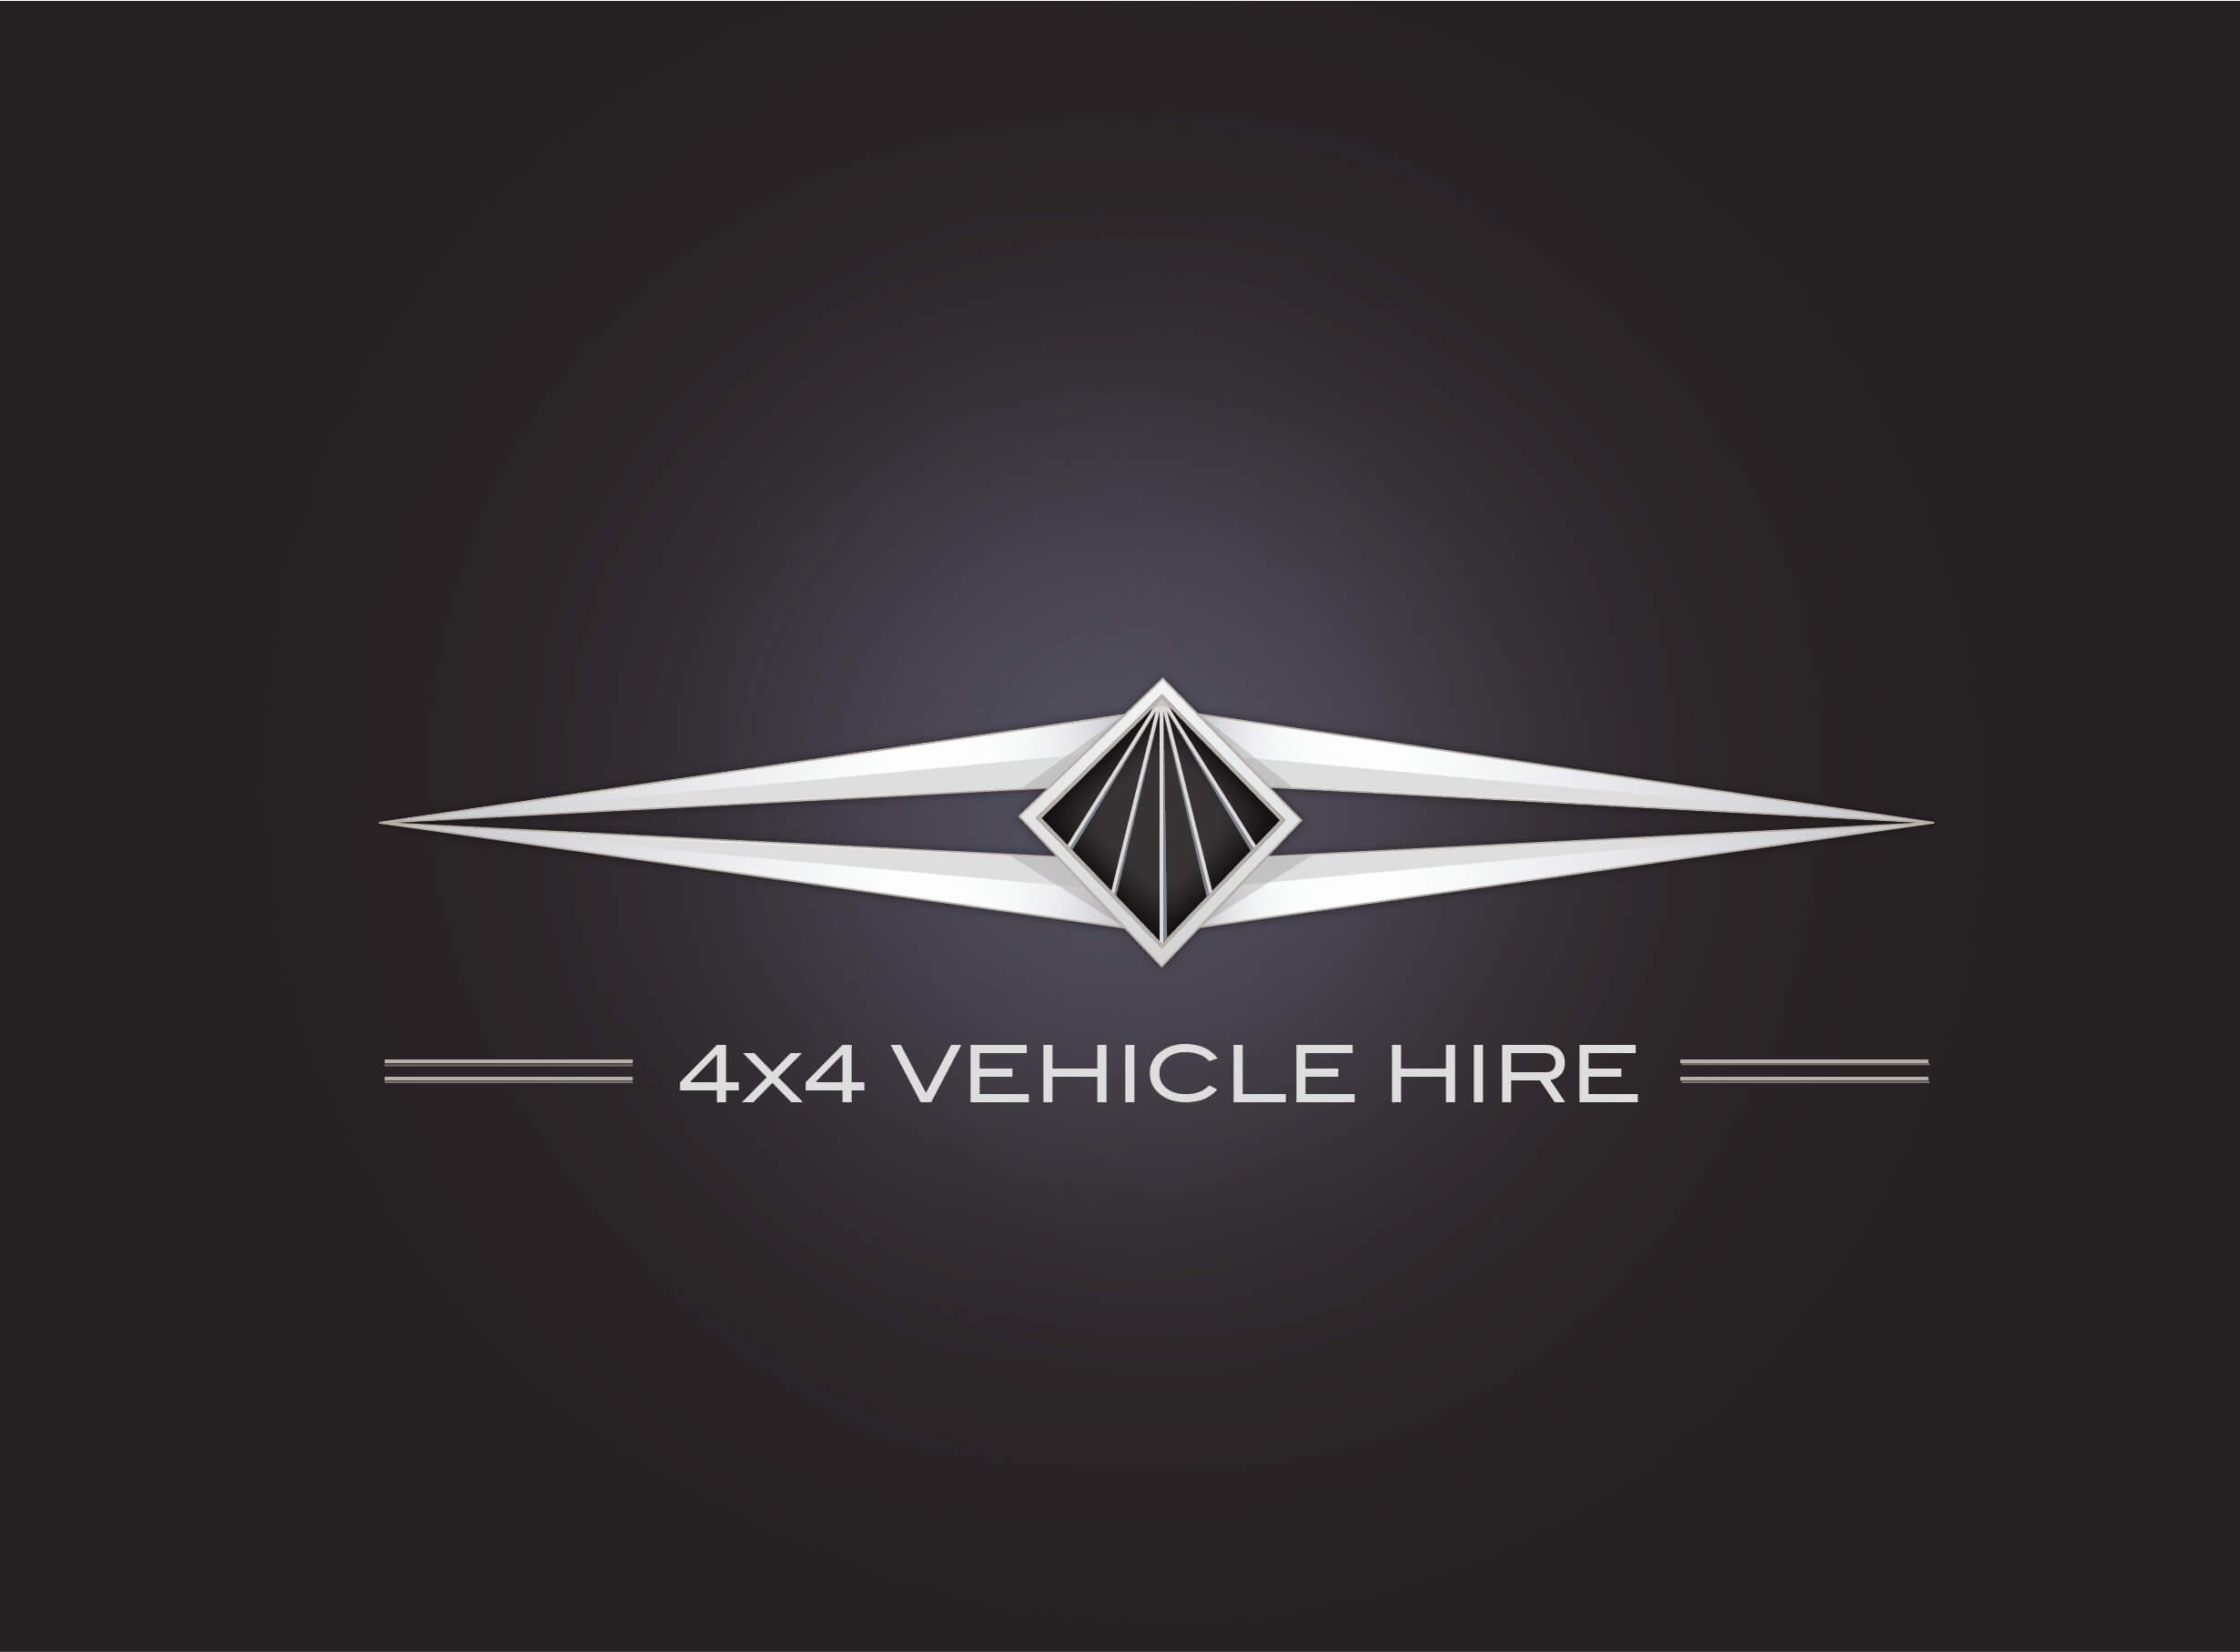 4 x 4 Vehicle Hire Franchise